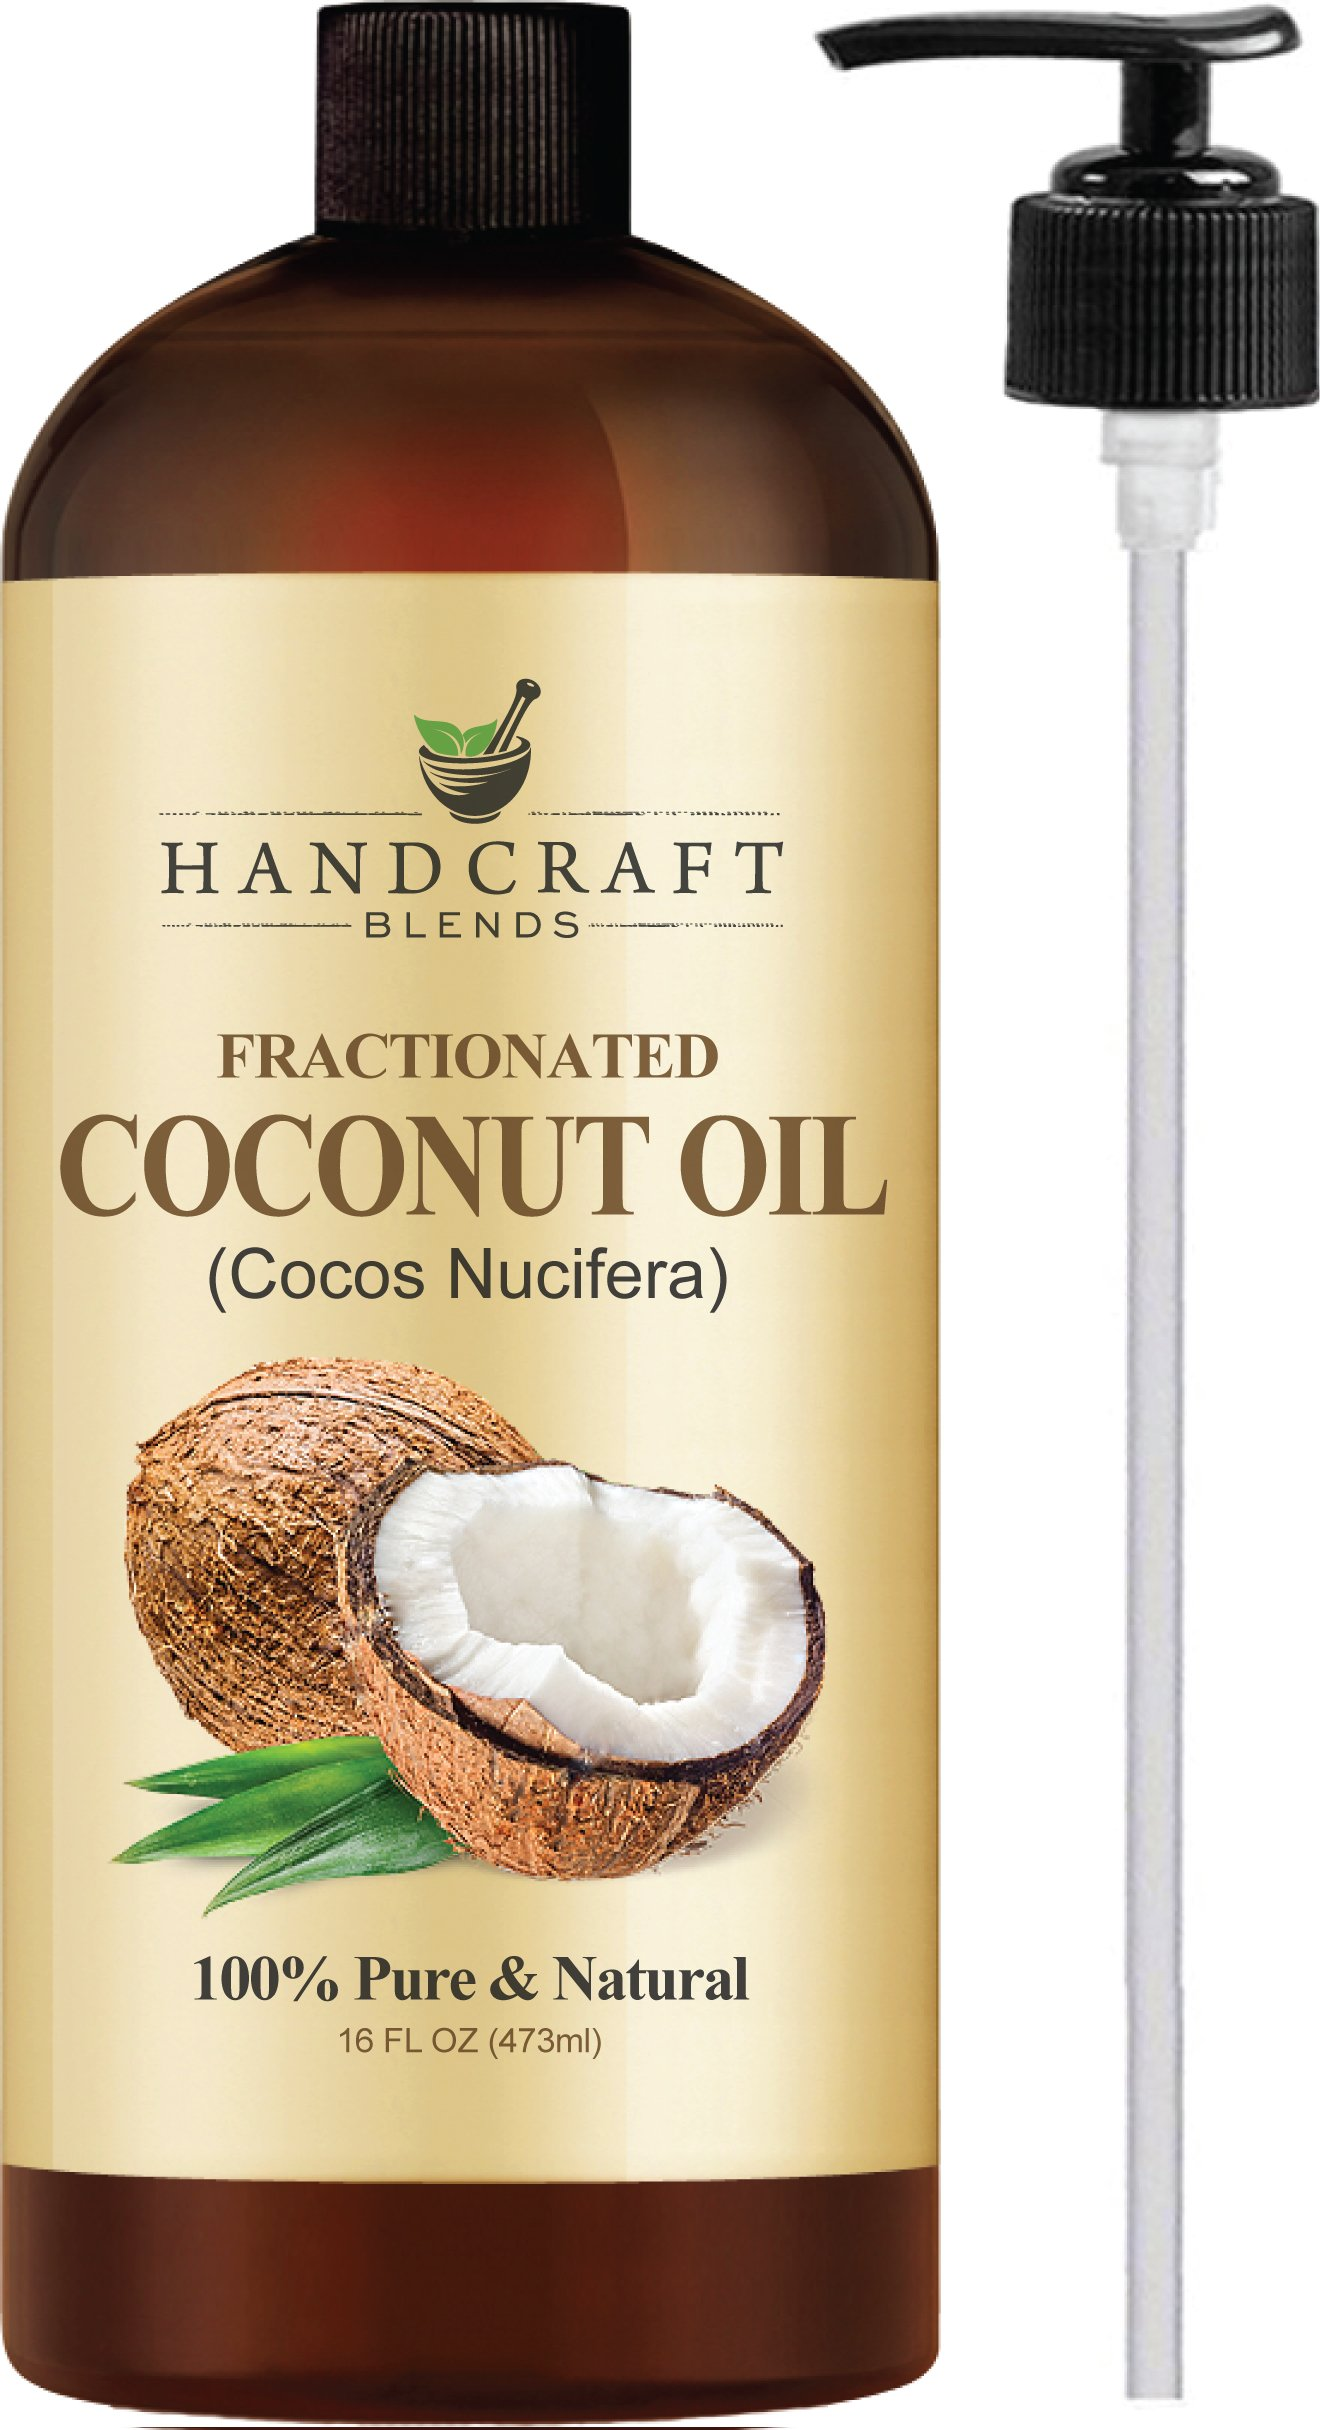 Handcraft Fractionated Coconut Oil - 100 Percent Pure and Natural - Premium Therapeutic Grade Carrier Oil for Aromatherapy, Massage, Moisturizing Skin and Hair - 16 oz by Handcraft Blends